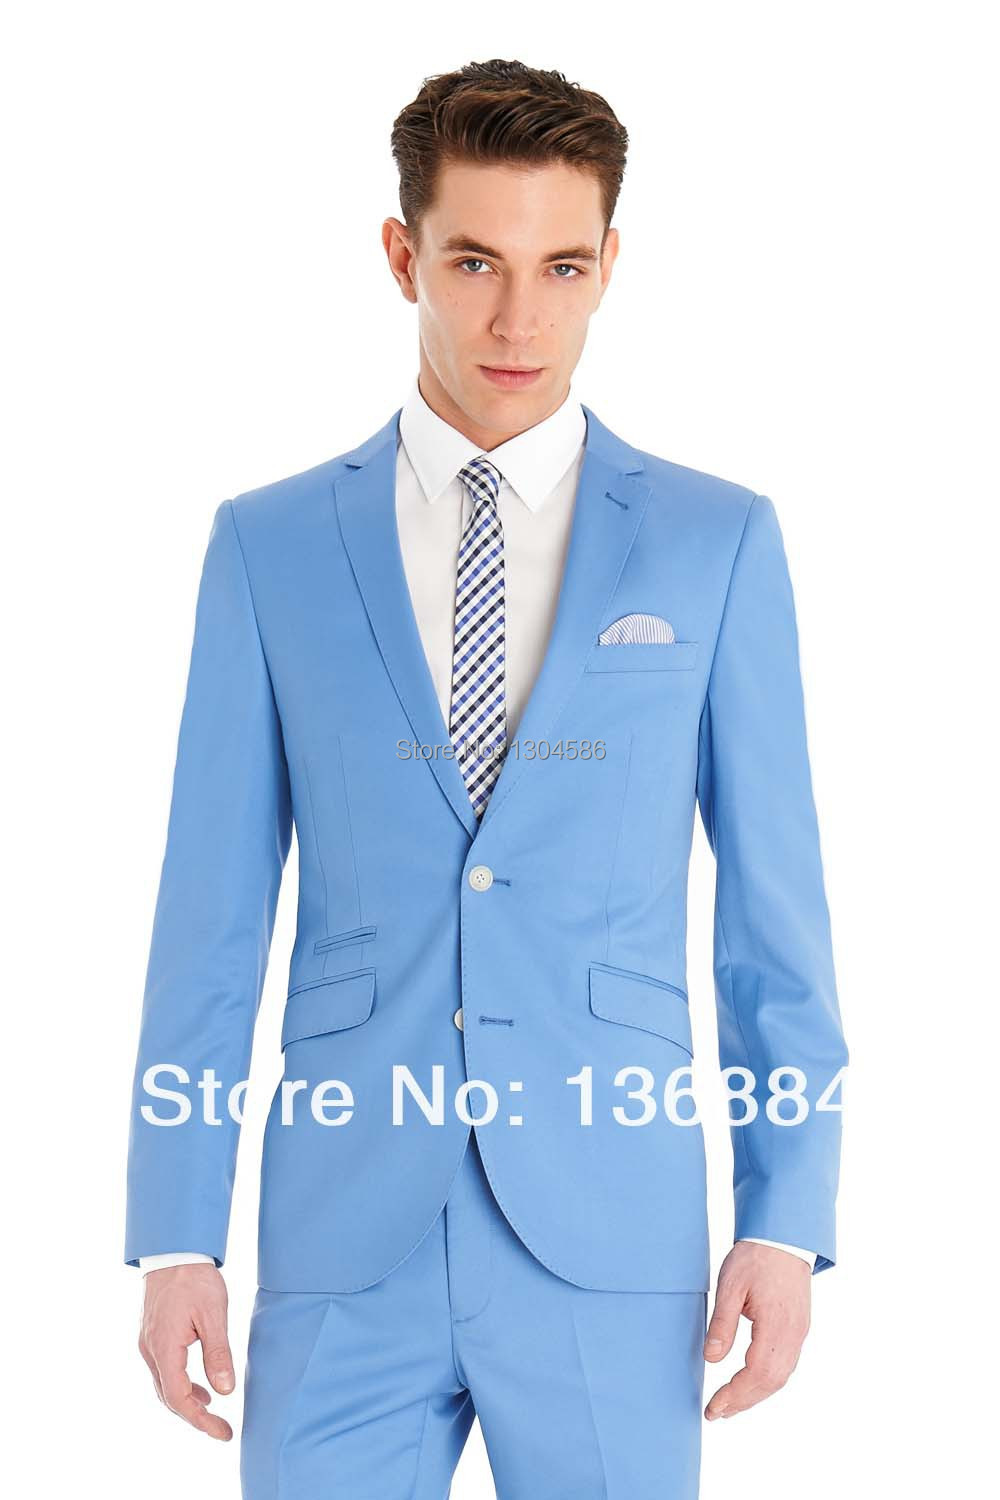 Online Shop new arrive custom made men's suits sky blue,light blue ...